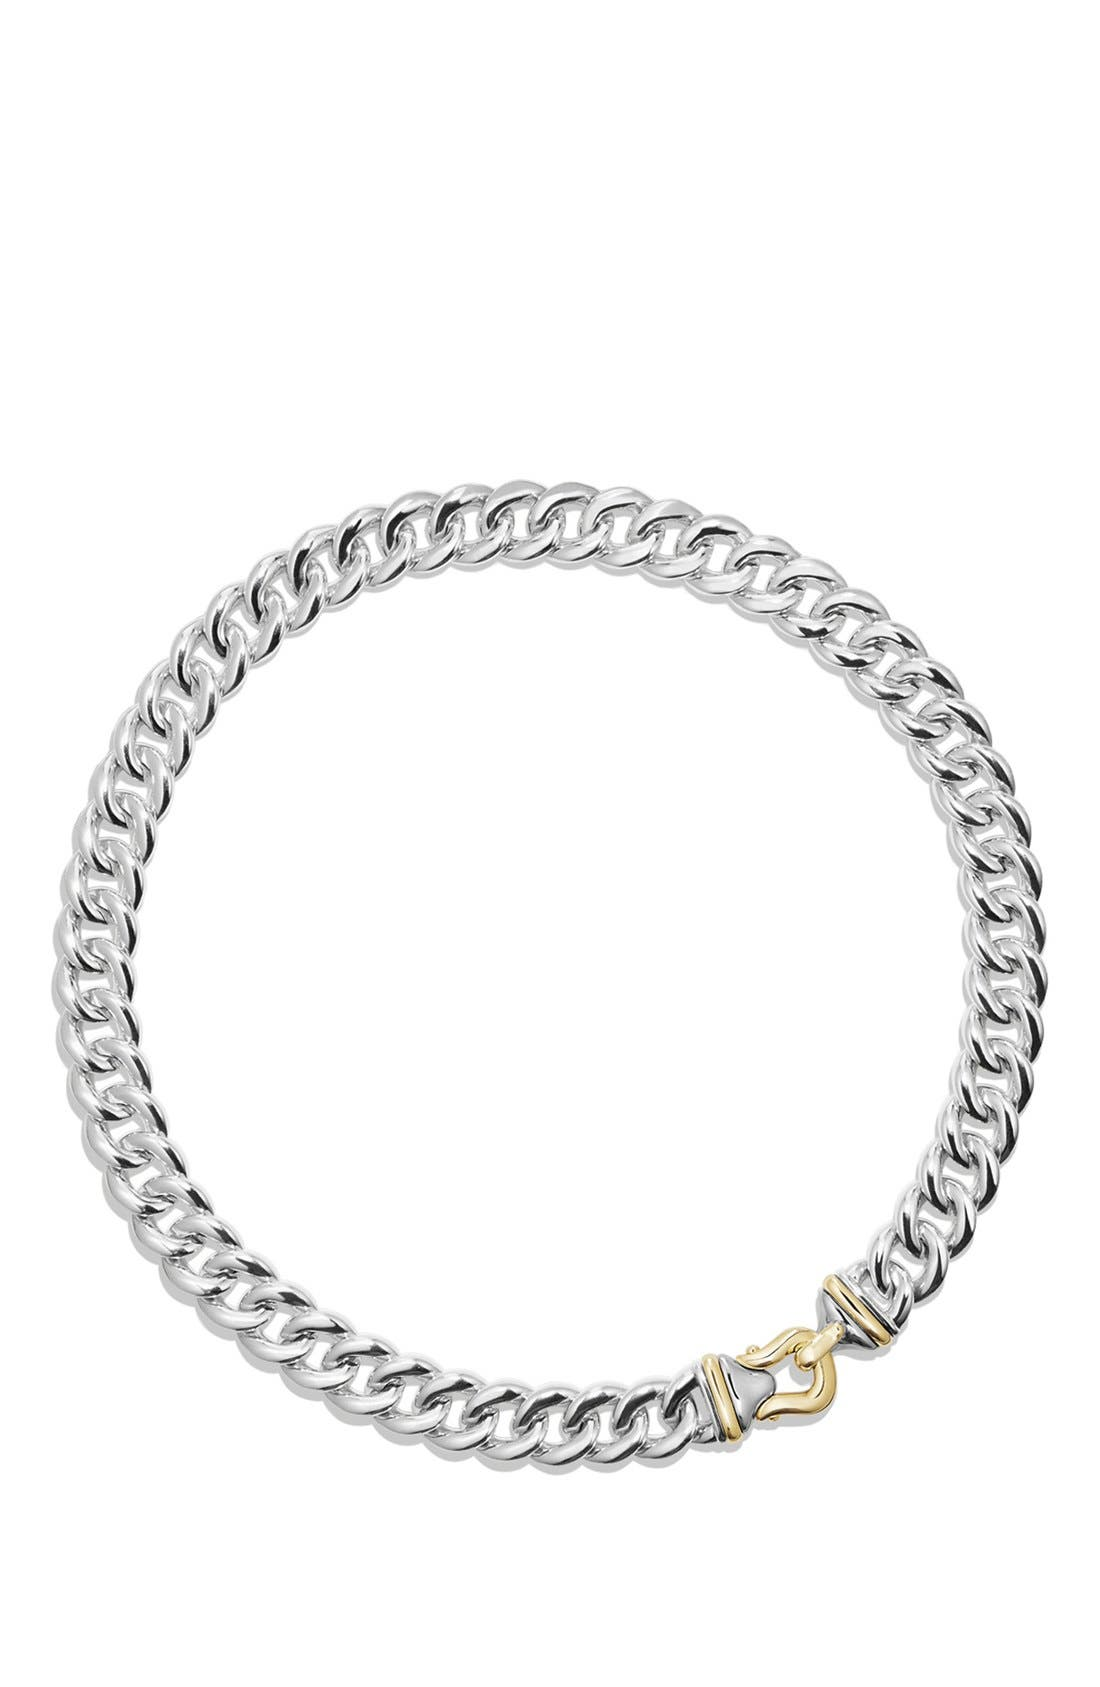 DAVID YURMAN 'Cable Buckle' Necklace in Sterling Silver